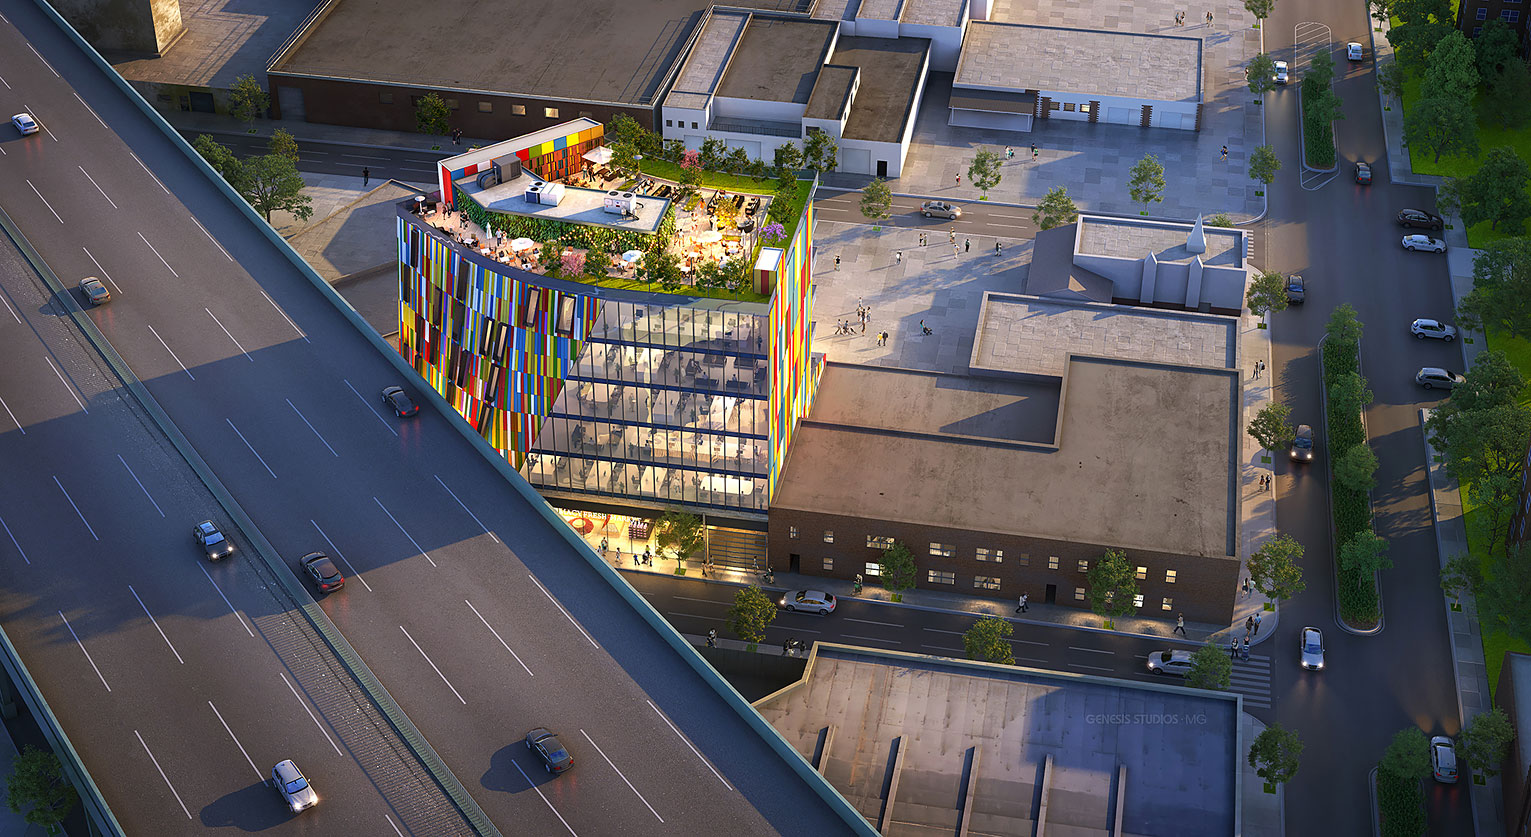 717109 Digital Photorealistic Architectural Renderings of 150 Mill Street from an Aerial View for Zoning and Code Consulting Group